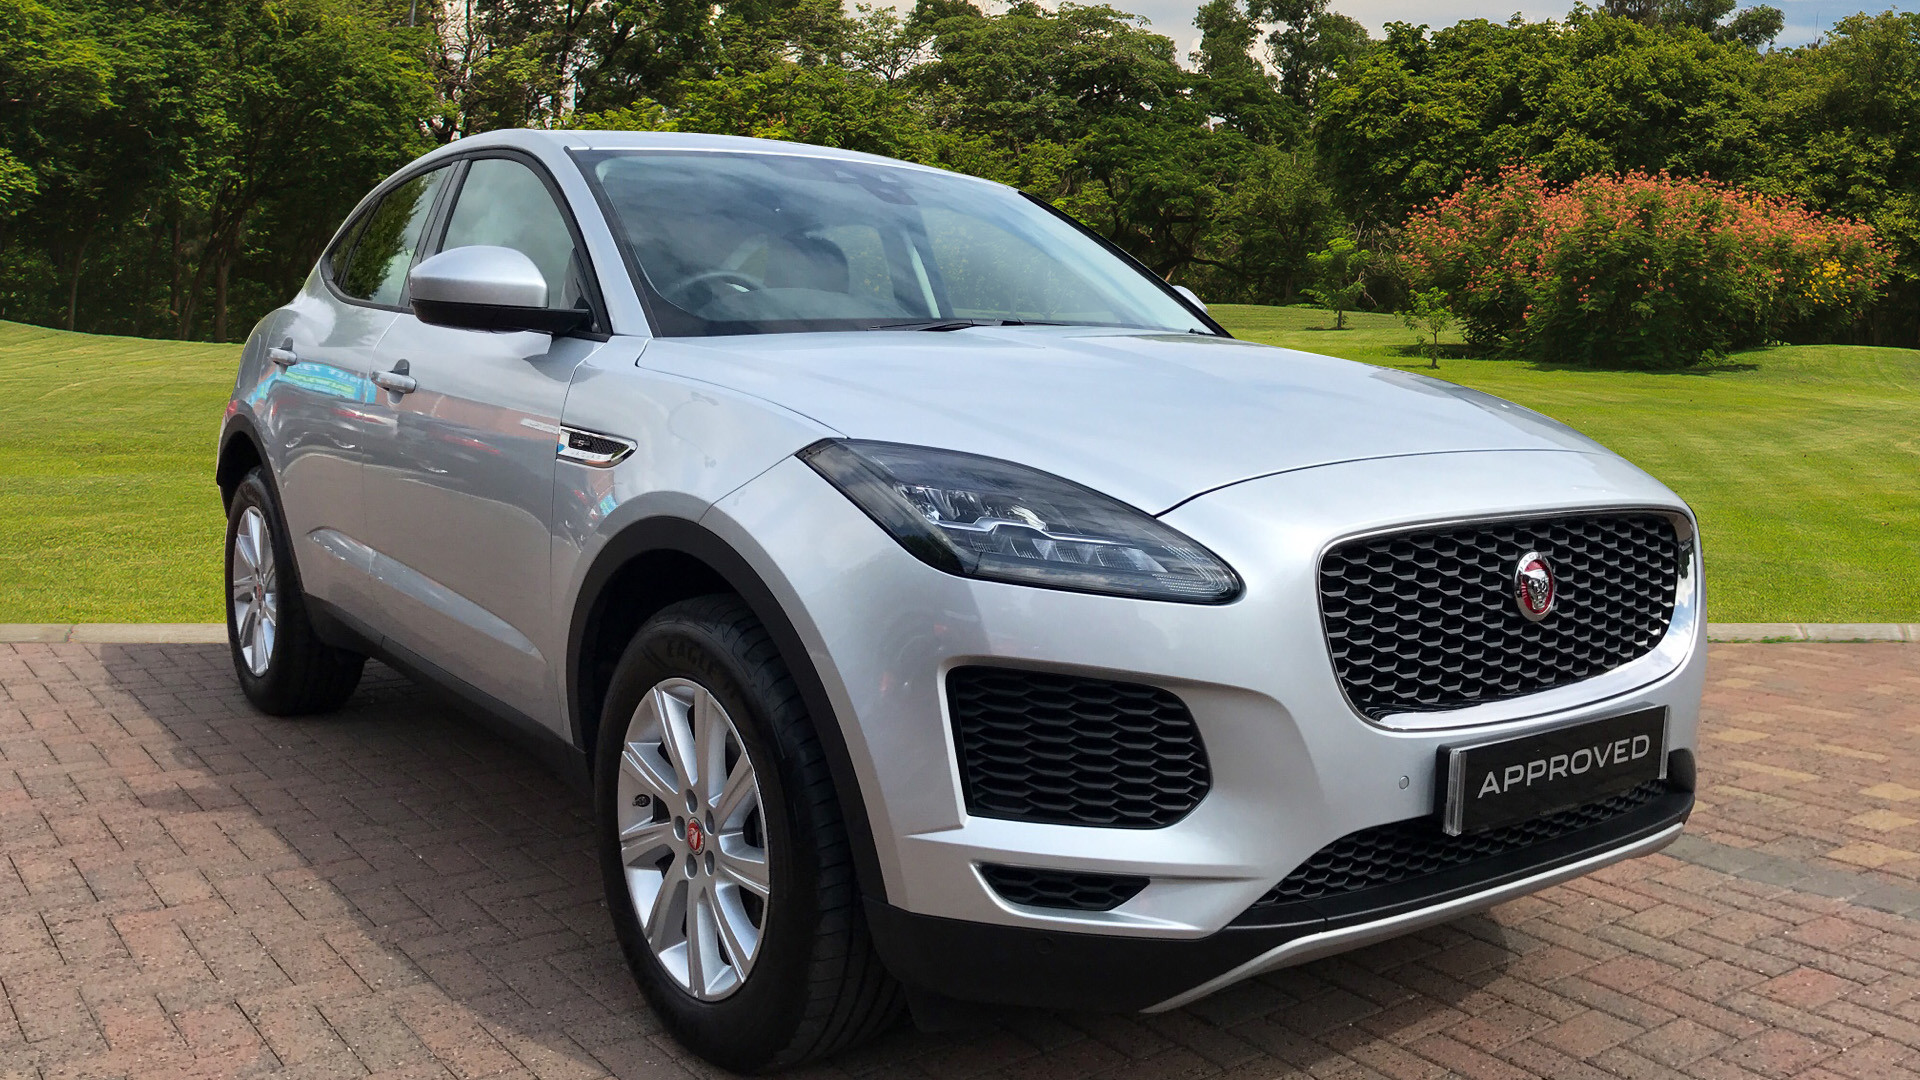 Used Jaguar E Pace 2 0D [180] S 5Dr Auto Diesel Estate for Sale